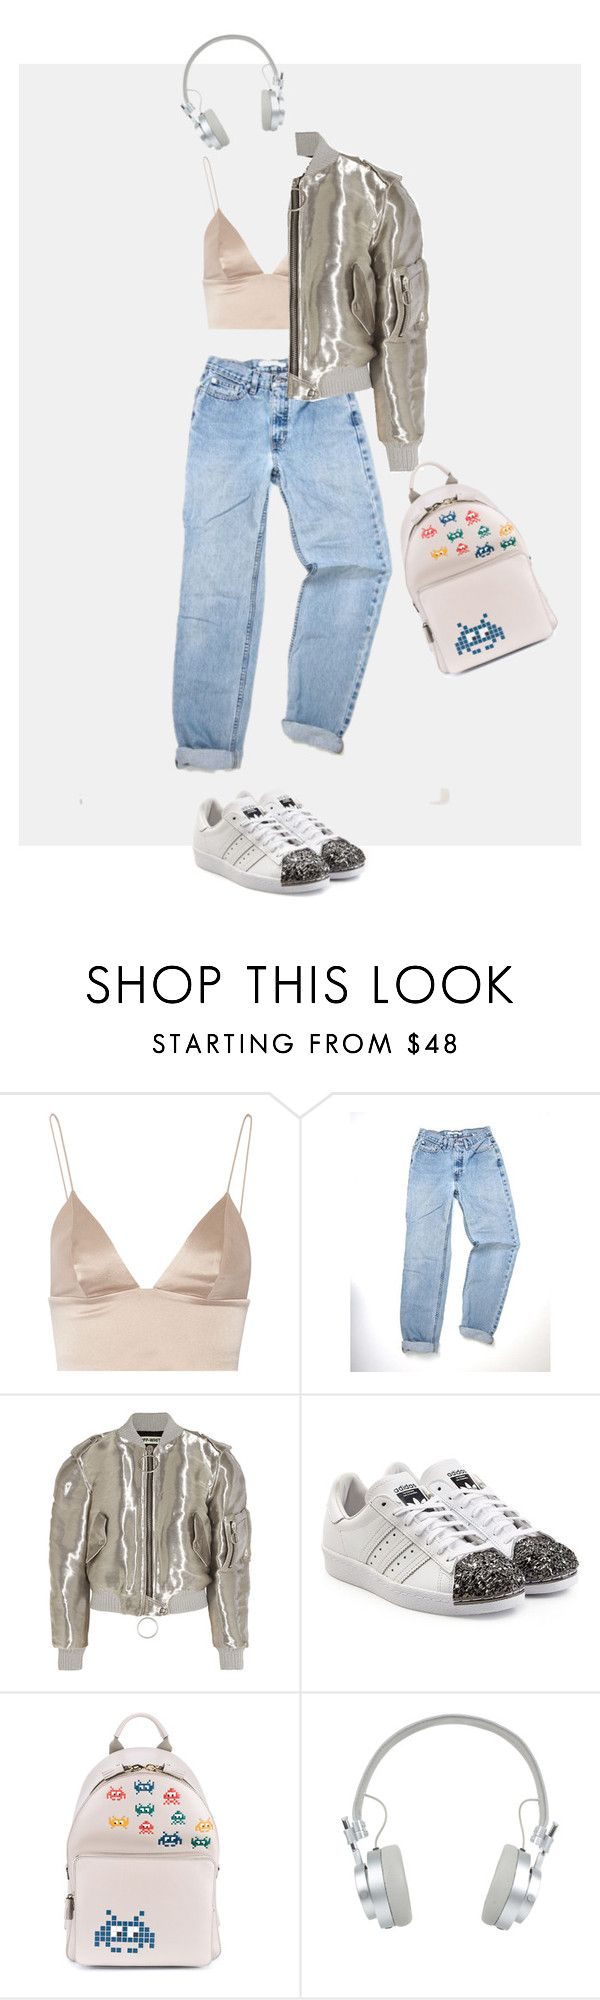 """""""Sportieve Outfit"""" by egesuk on Polyvore featuring moda, T By Alexander Wang, Off-White, adidas Originals, Anya Hindmarch ve Master & Dynamic"""